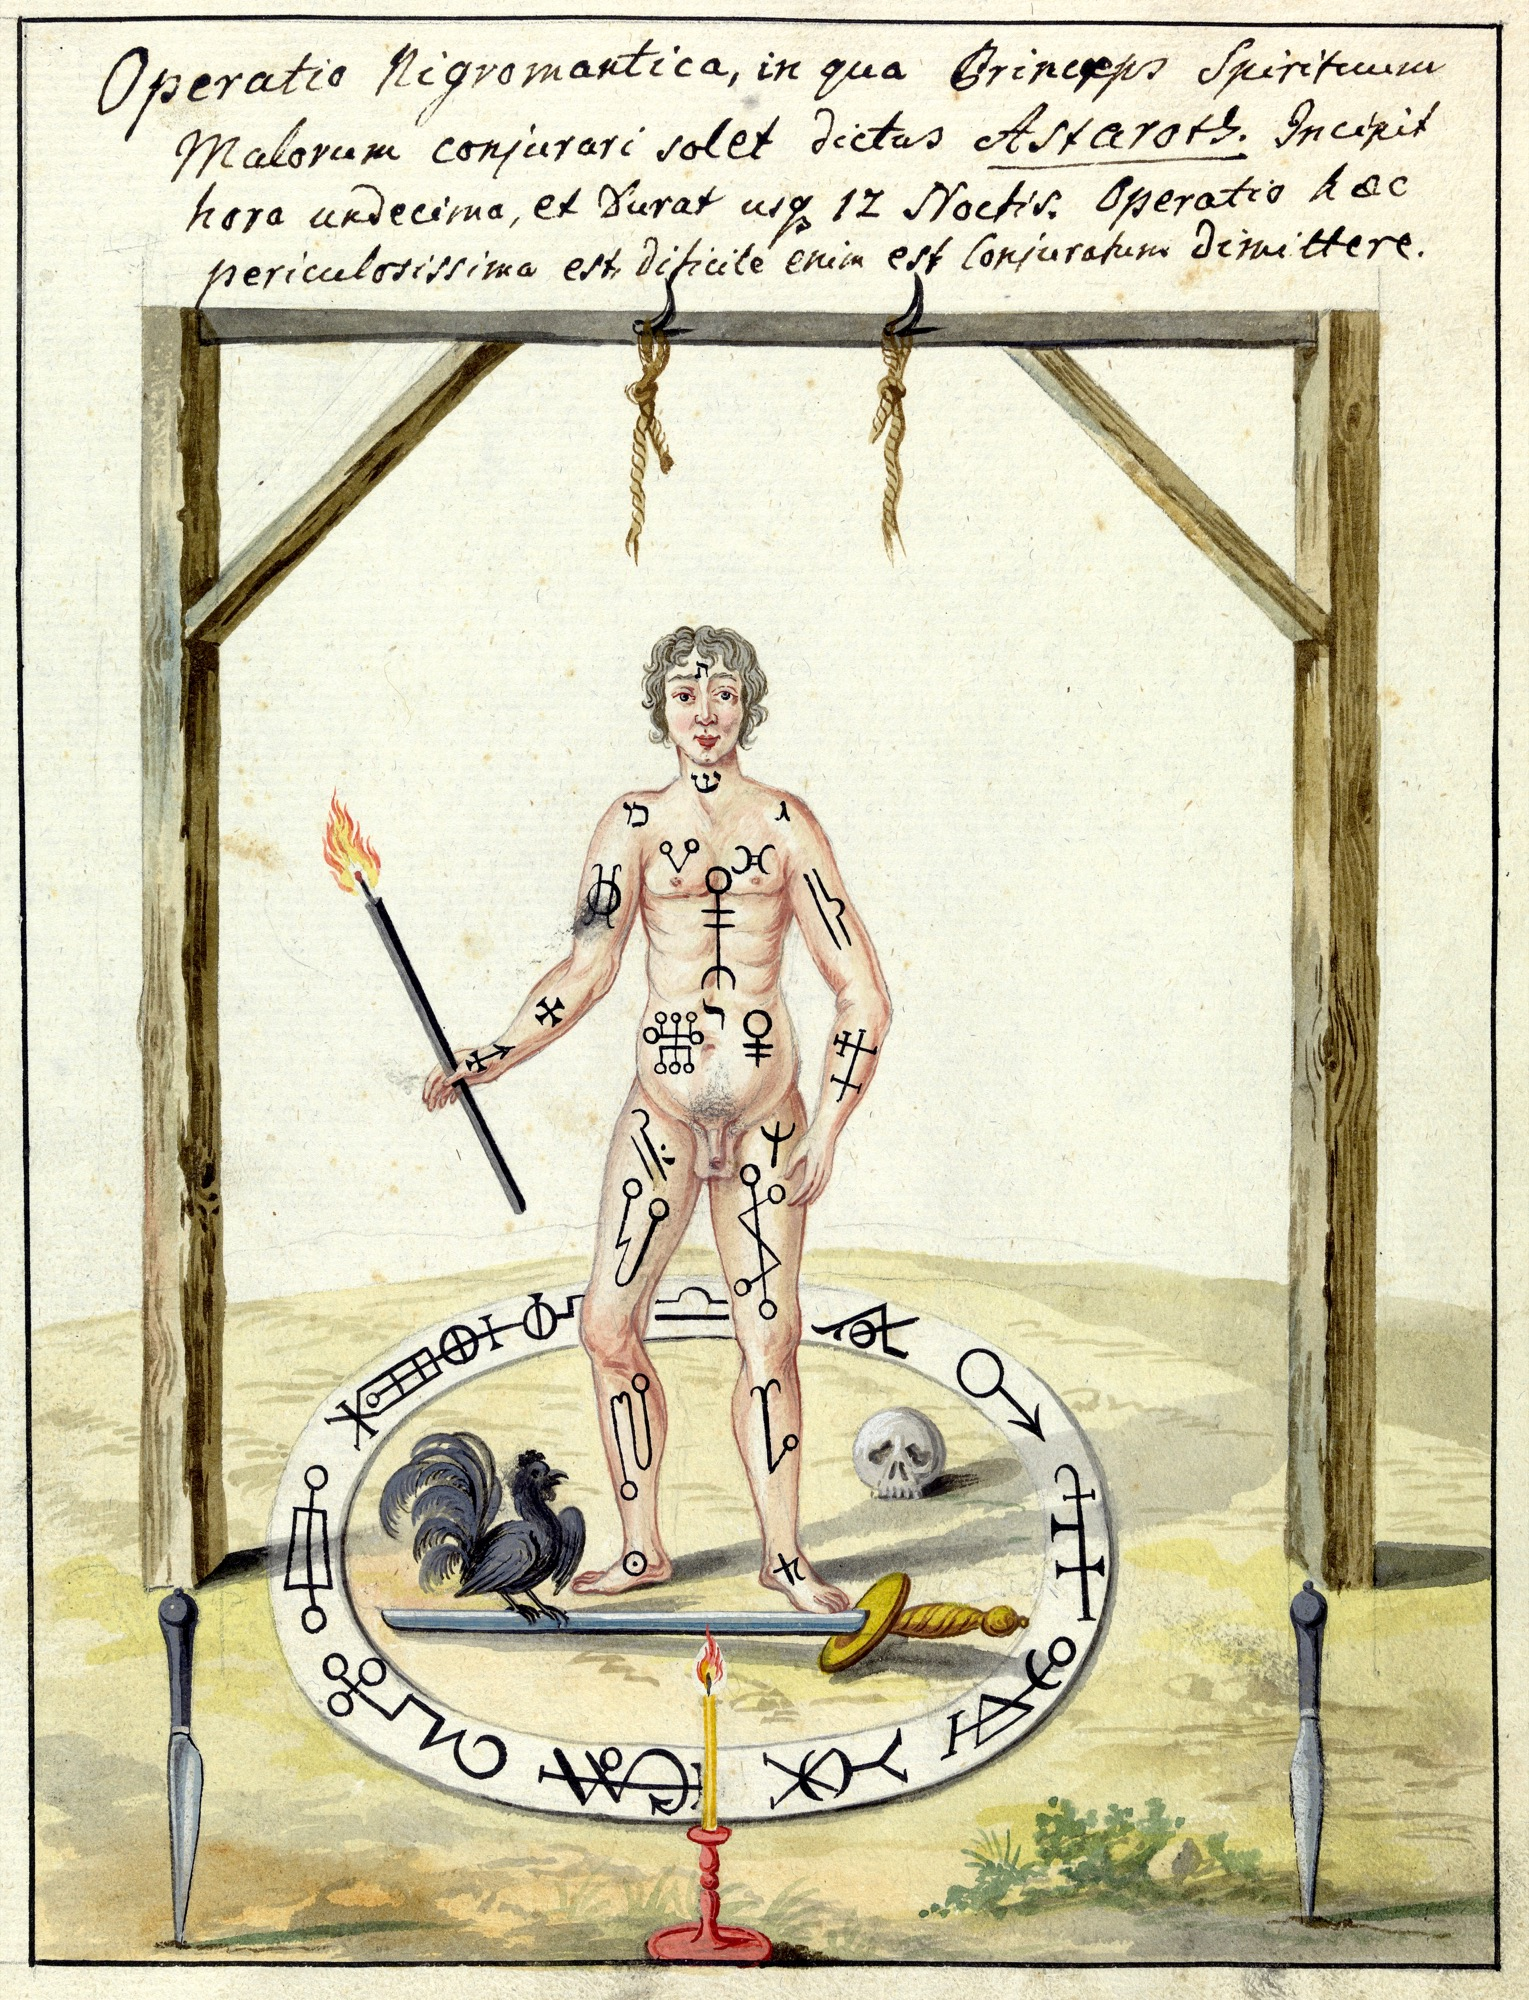 L0076376 Illustration of a magic circle ritual. Credit: Wellcome Library, London. Wellcome Images images@wellcome.ac.uk http://wellcomeimages.org Compendium rarissimum totius Artis Magicae sistematisatae per celeberrimos Artis hujus Magistros. Anno 1057. Noli me tangere. Watercolour c. 1775 Published:  -  Copyrighted work available under Creative Commons Attribution only licence CC BY 4.0 http://creativecommons.org/licenses/by/4.0/